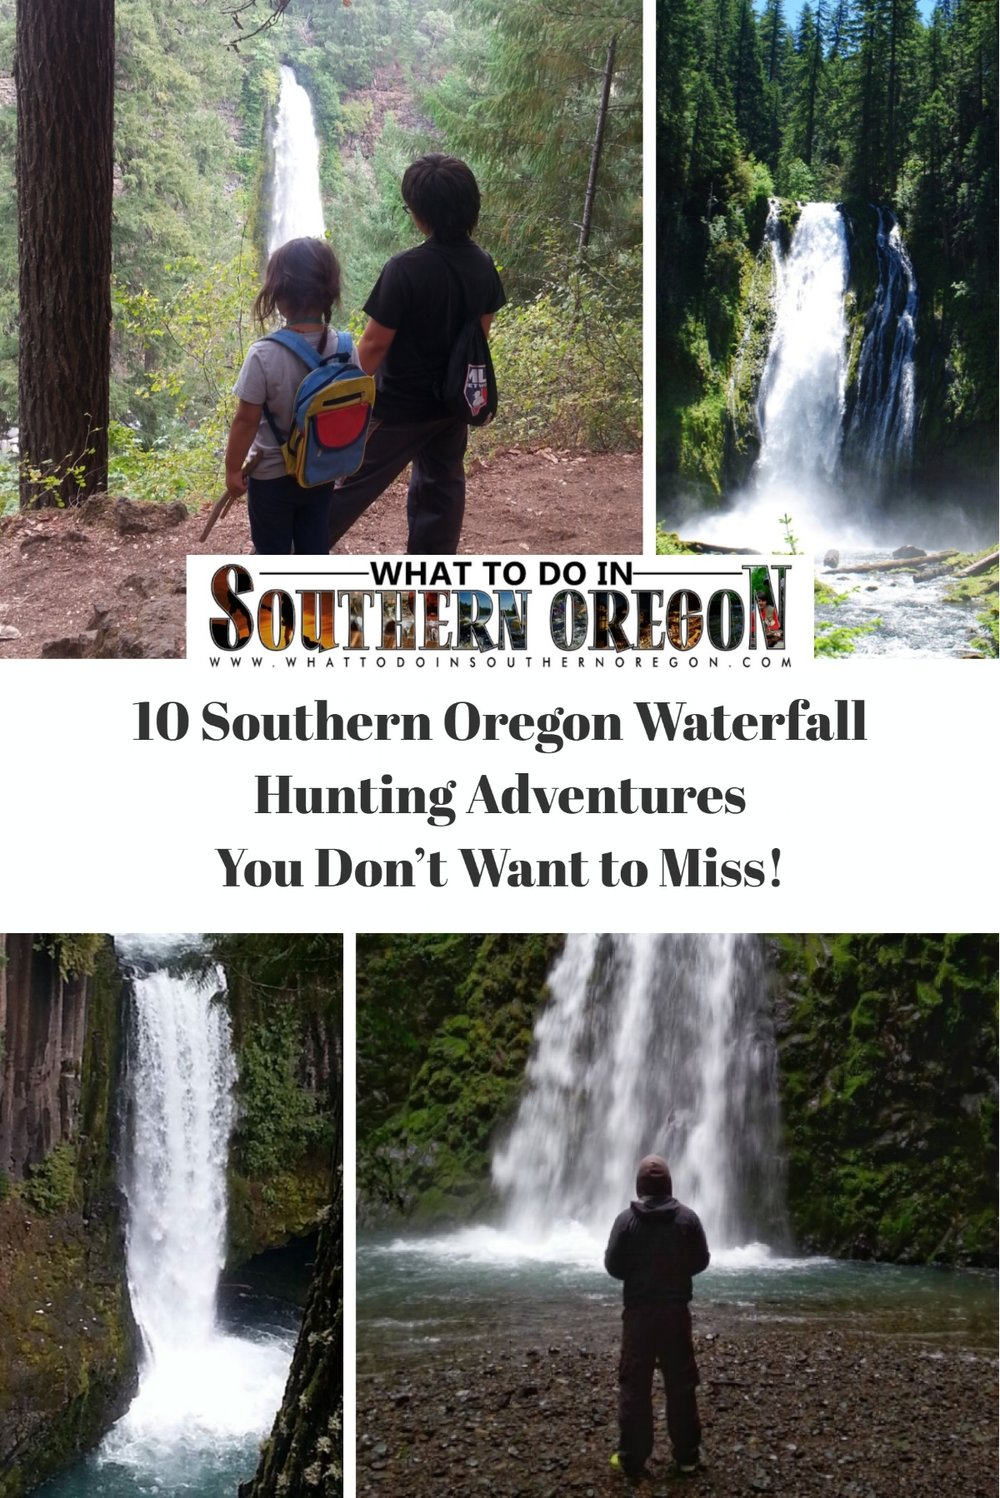 10 Southern Oregon Waterfall Adventures - What to do in Southern Oregon